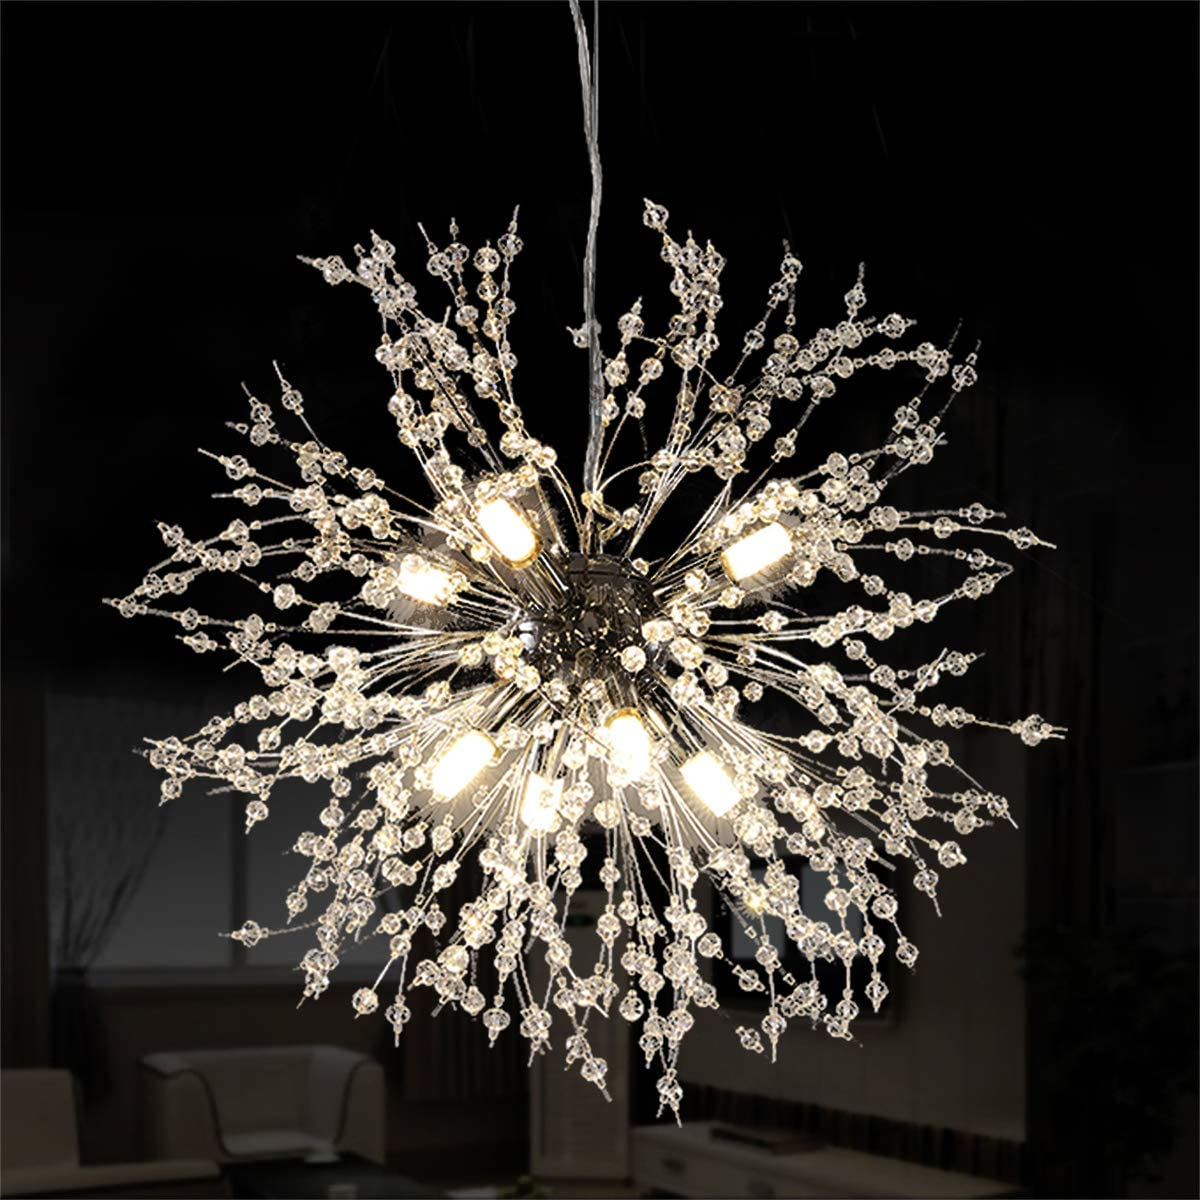 Ganeed Firework Chandeliers,LED Crystal Modern Pendant Lighting with 8 Lights,Stanless Steel Ceiling Light Fixtures Pendant Lamp for Living Room Bedroon Restaurant, Dia15.7 inch,Chrome